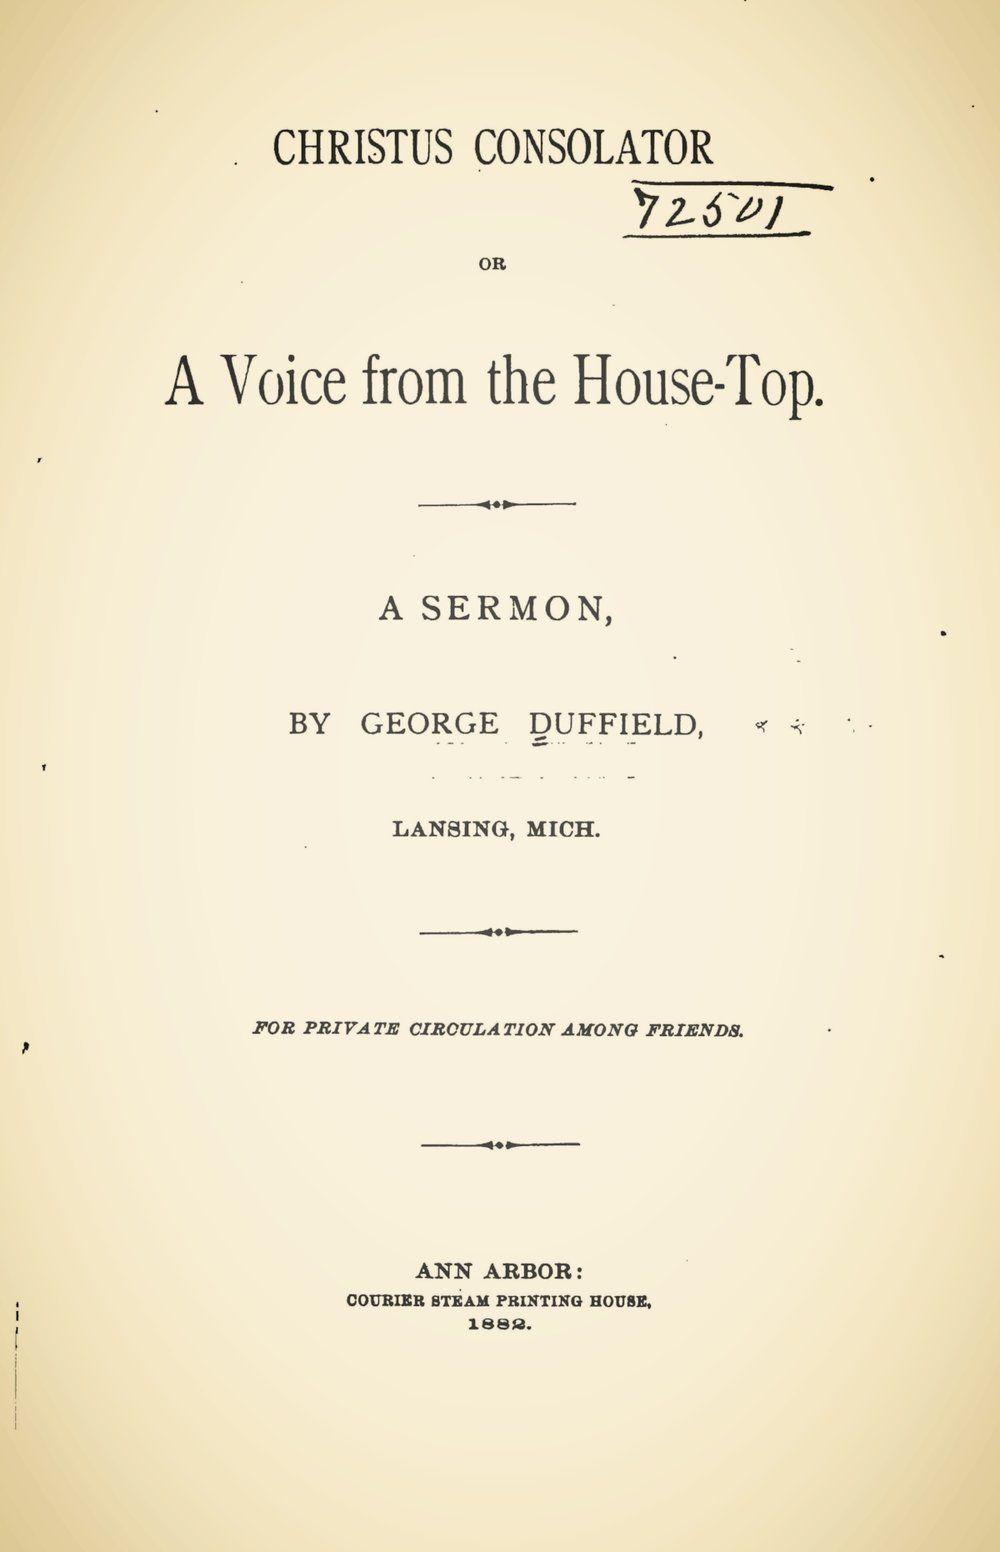 Duffield, V, George, Christus Consolator Title Page.jpg